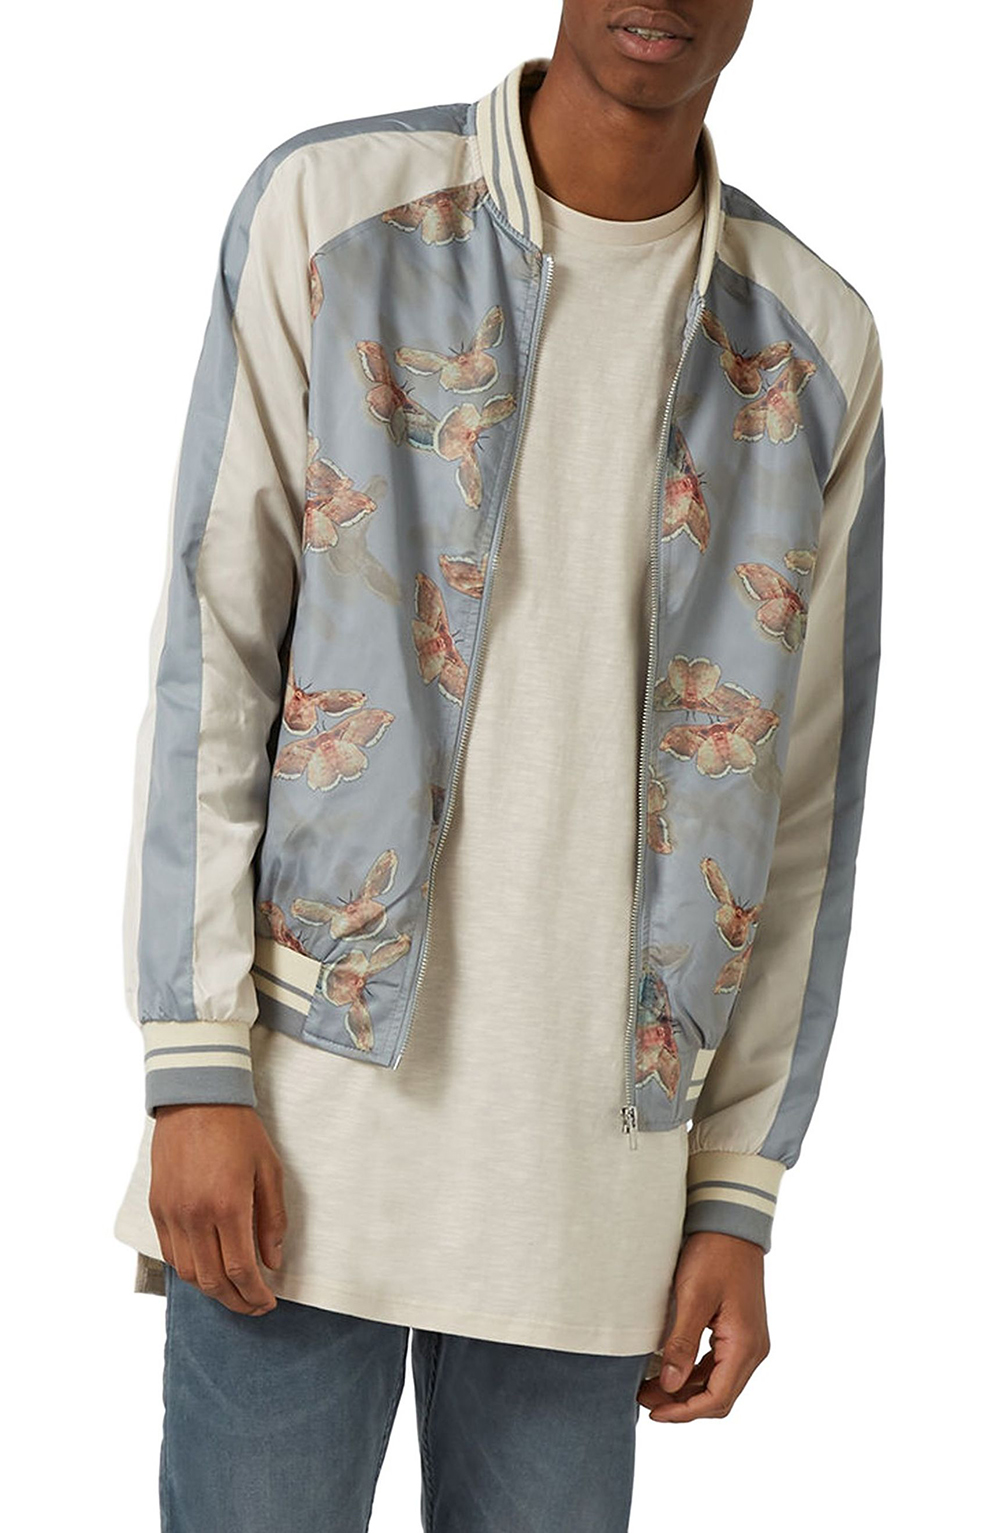 Topman Moth Print Souvenir Bomber Jacket - Spring Menswear: Button Downs and Bomber Jackets